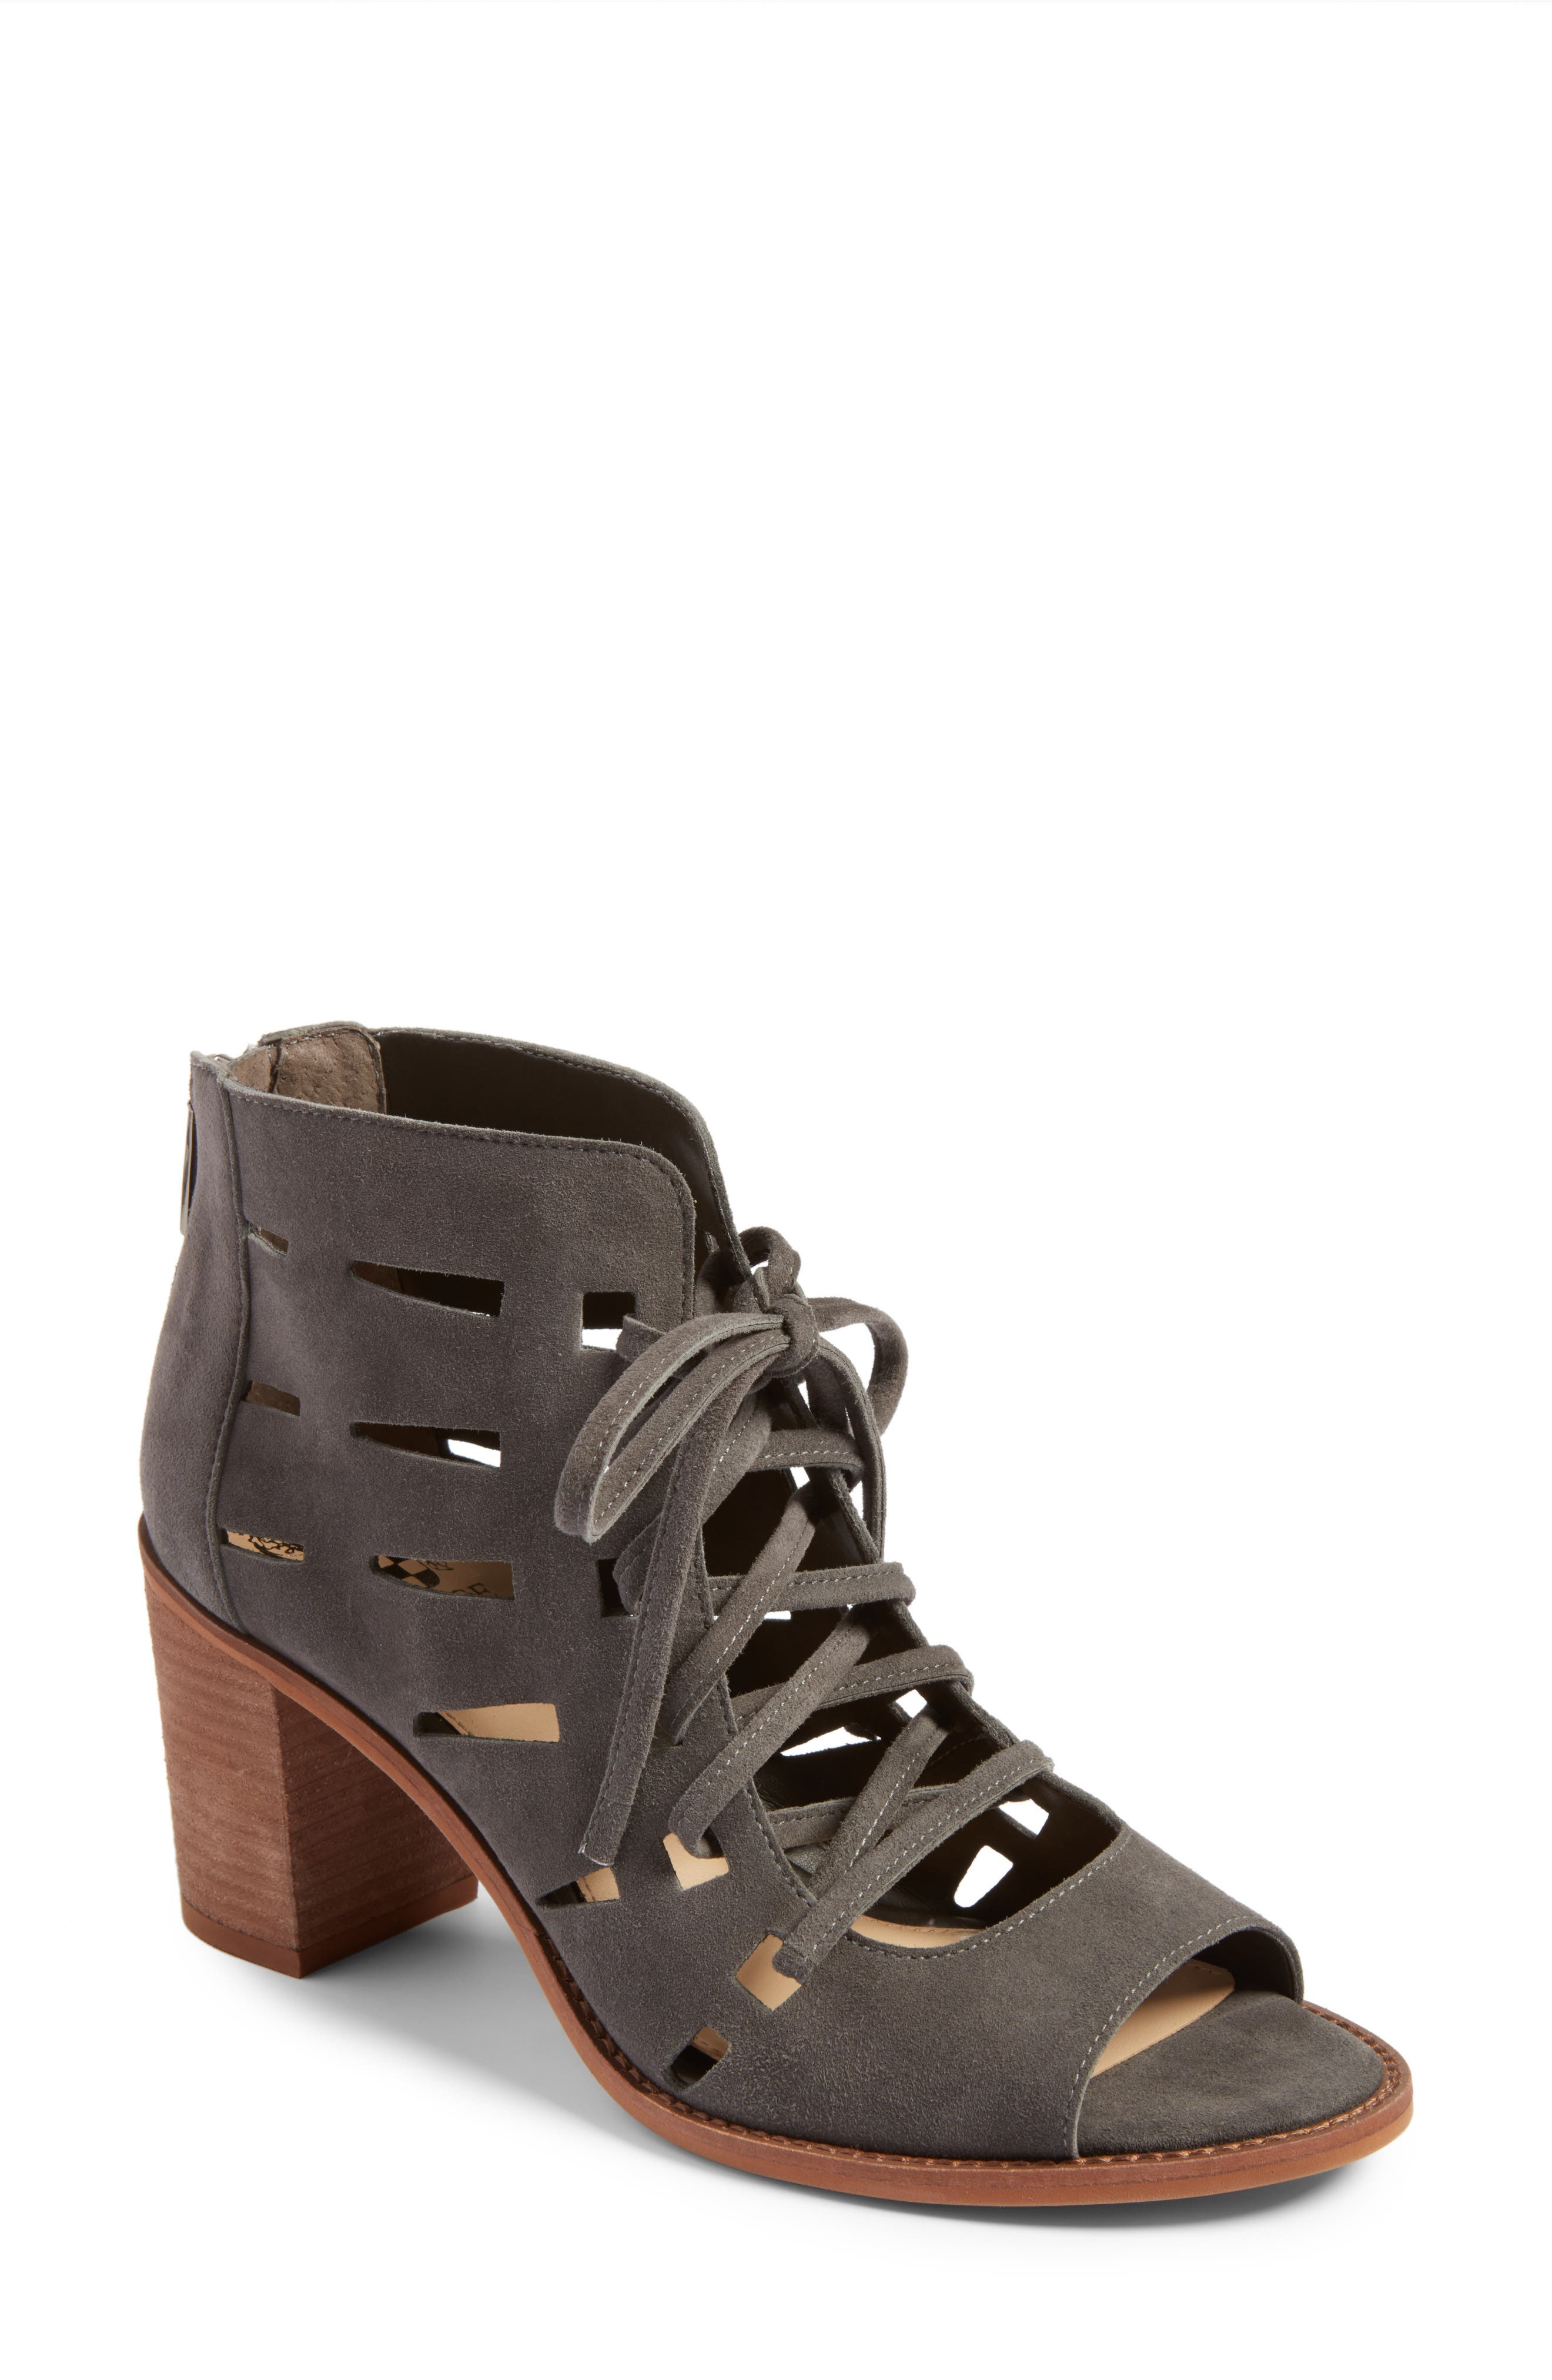 Tressa Perforated Lace-Up Sandal,                         Main,                         color, Greystone Suede